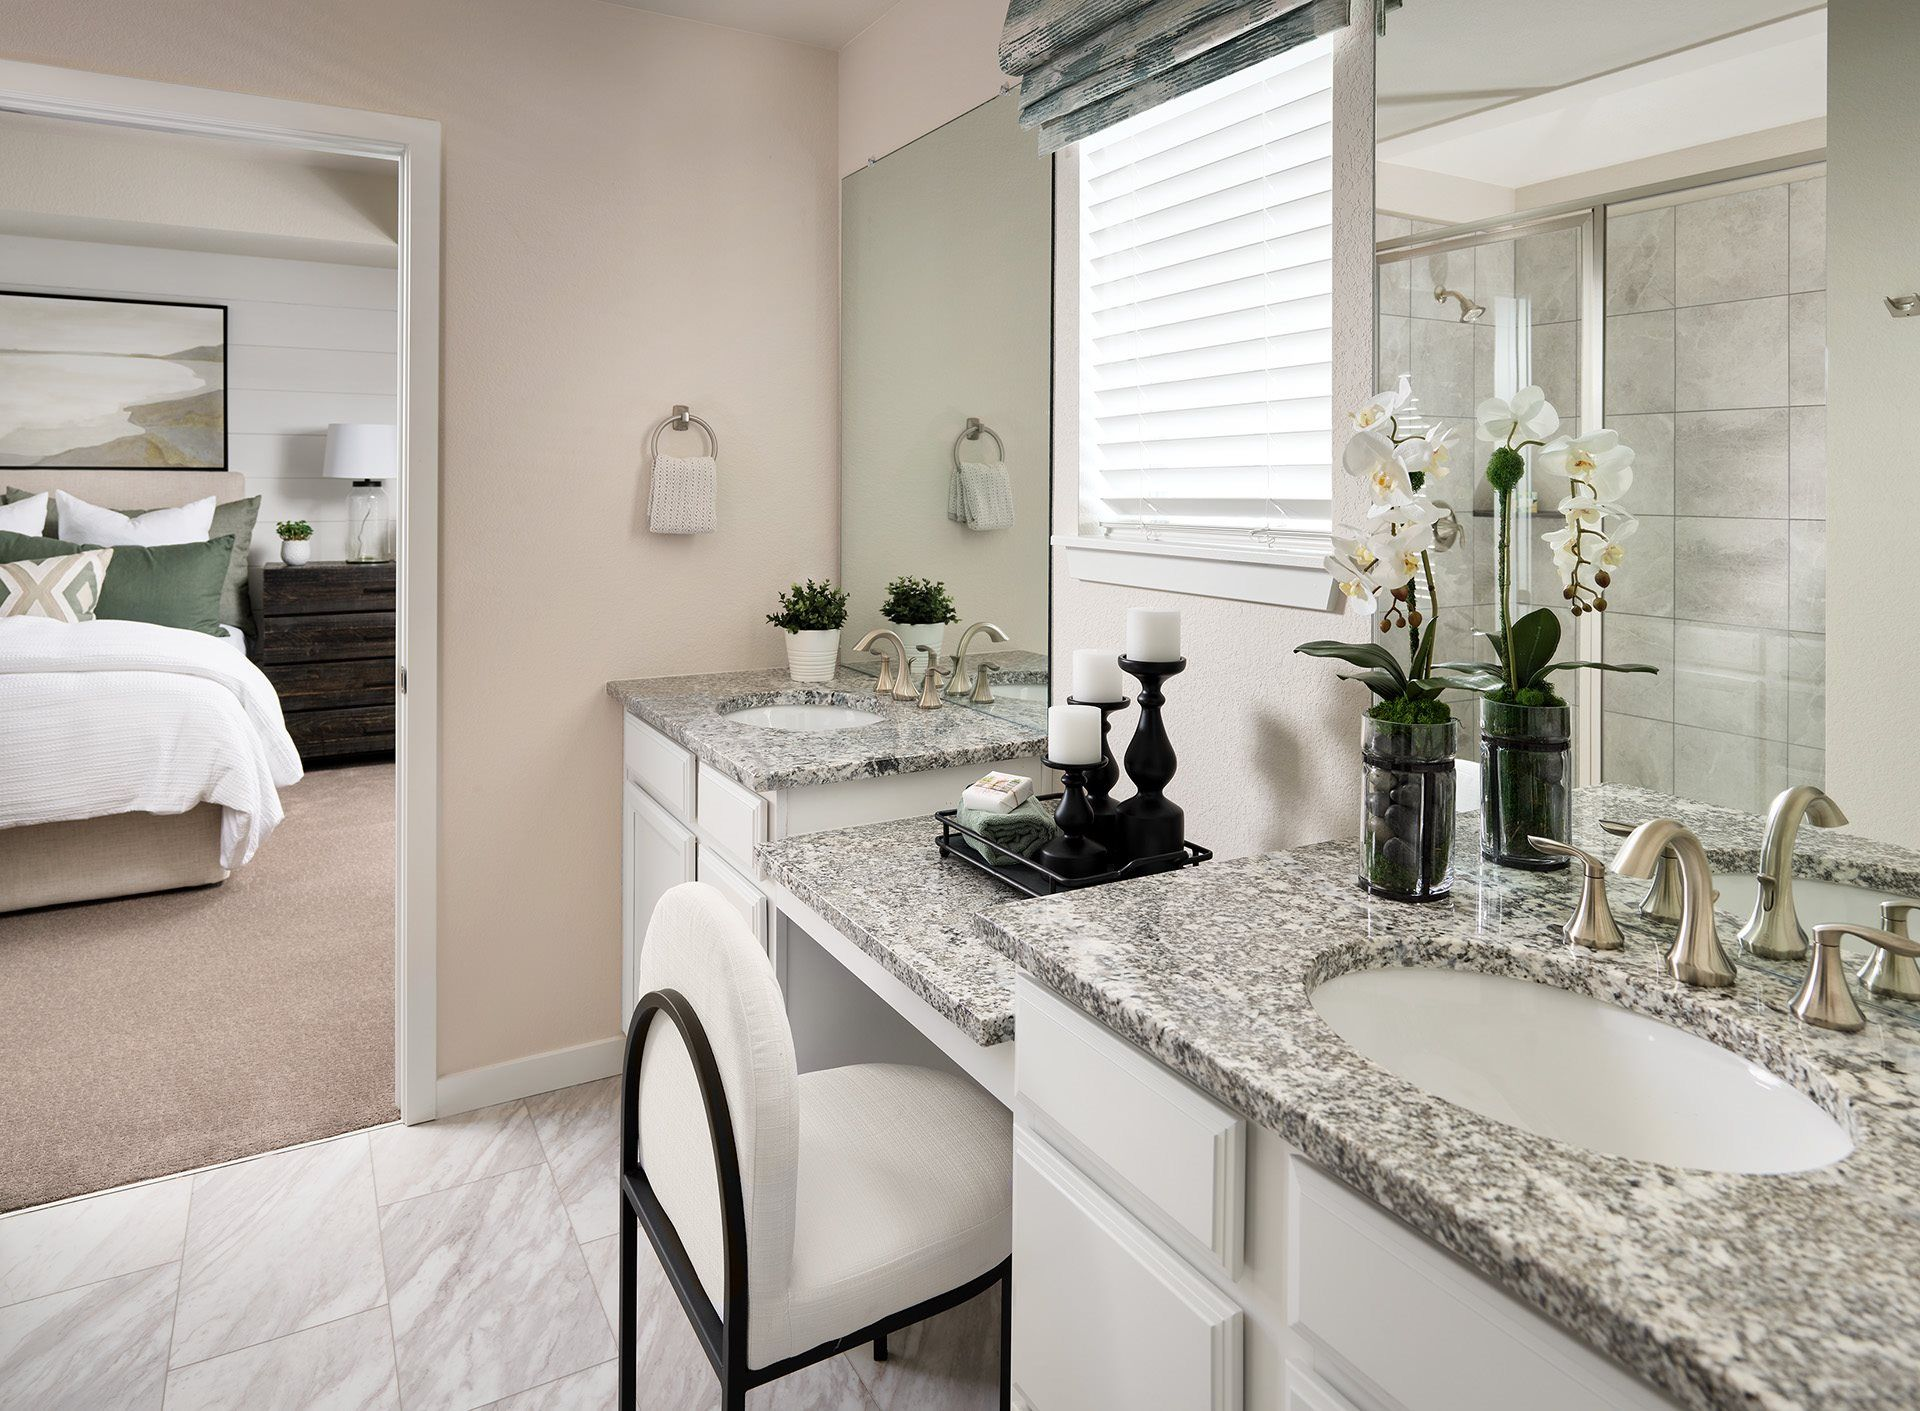 Bathroom featured in the Tabor By Lennar in Denver, CO